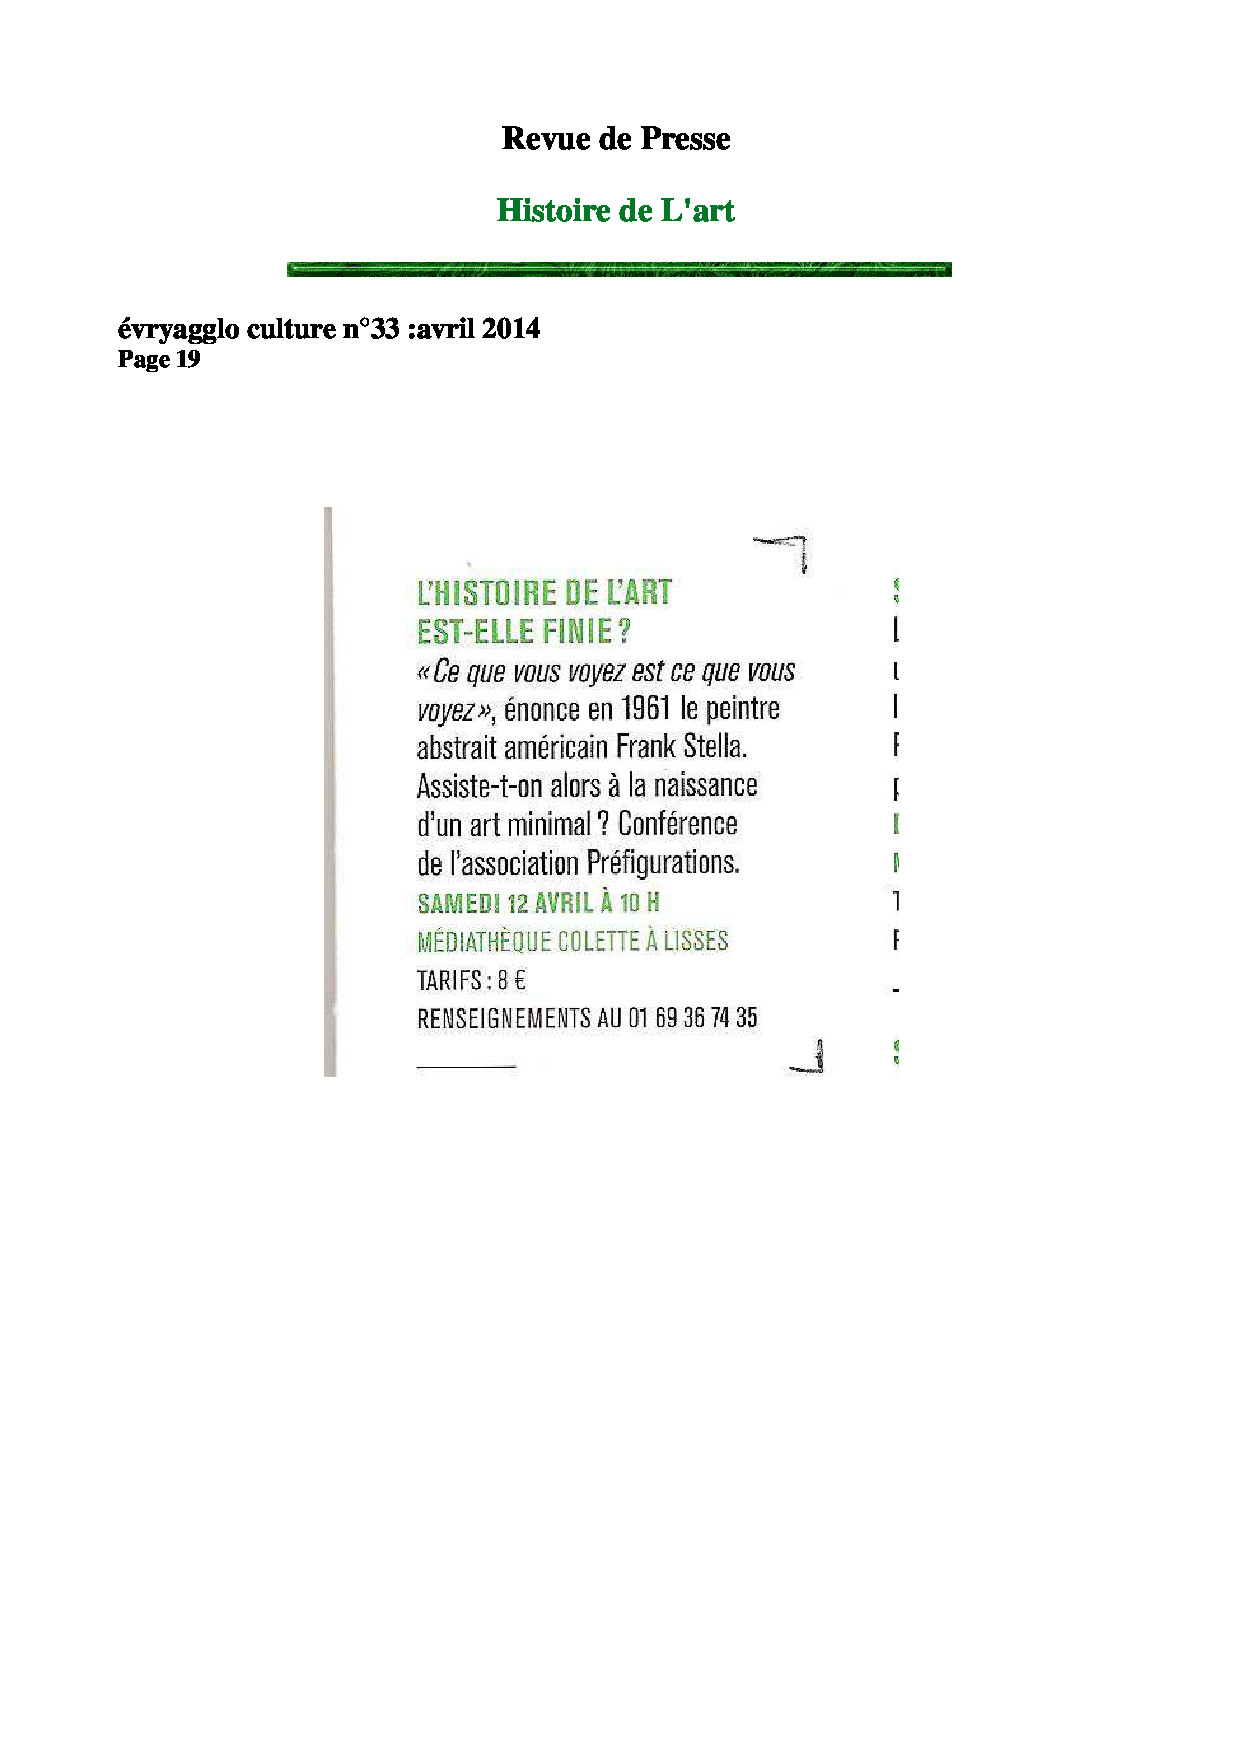 RDP Evry agglo n°33 avril 2014 page 19